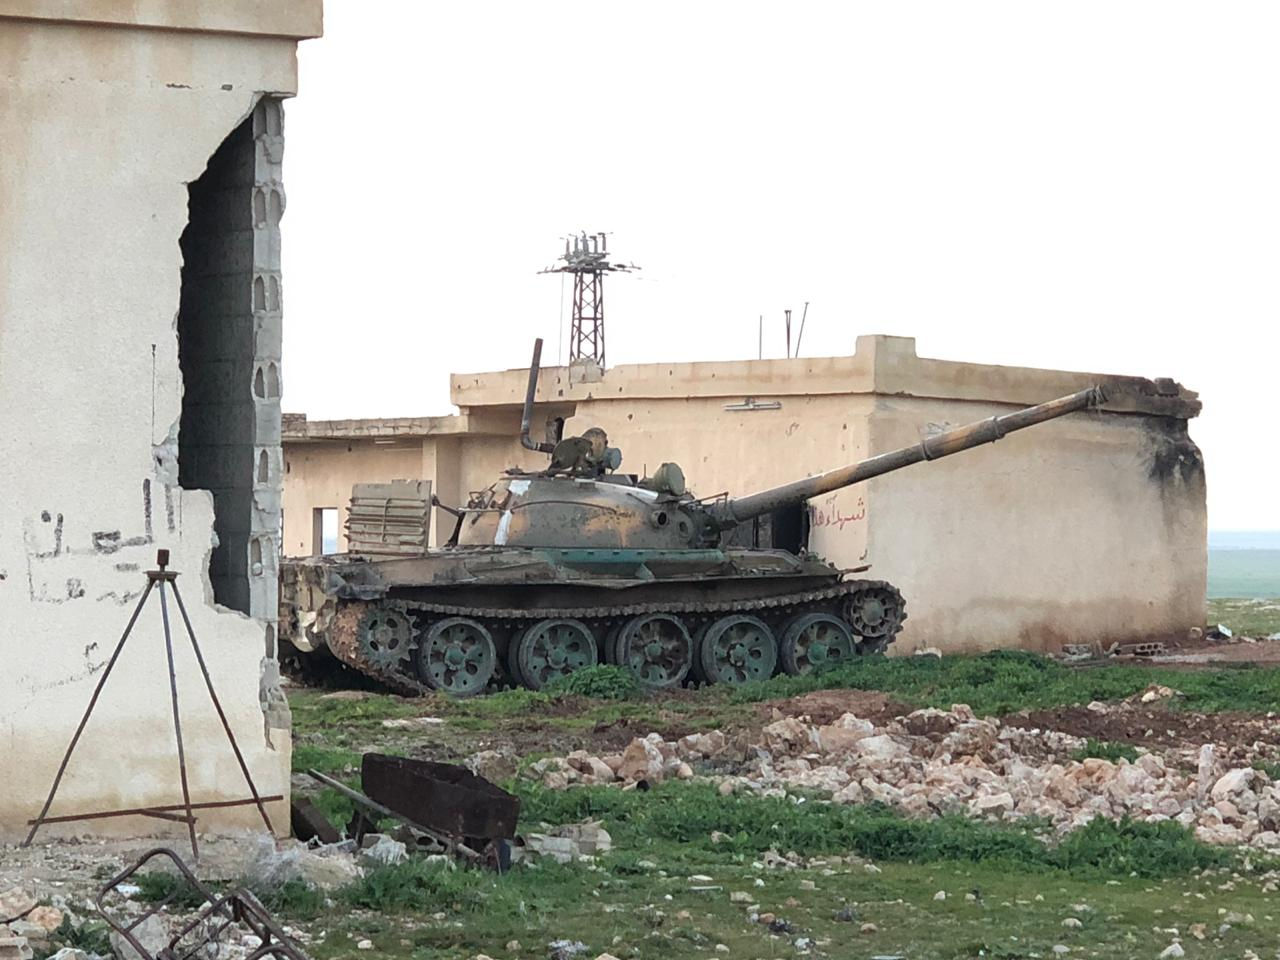 Syrian tank near Idlib facing Uyghurs and other terrorists